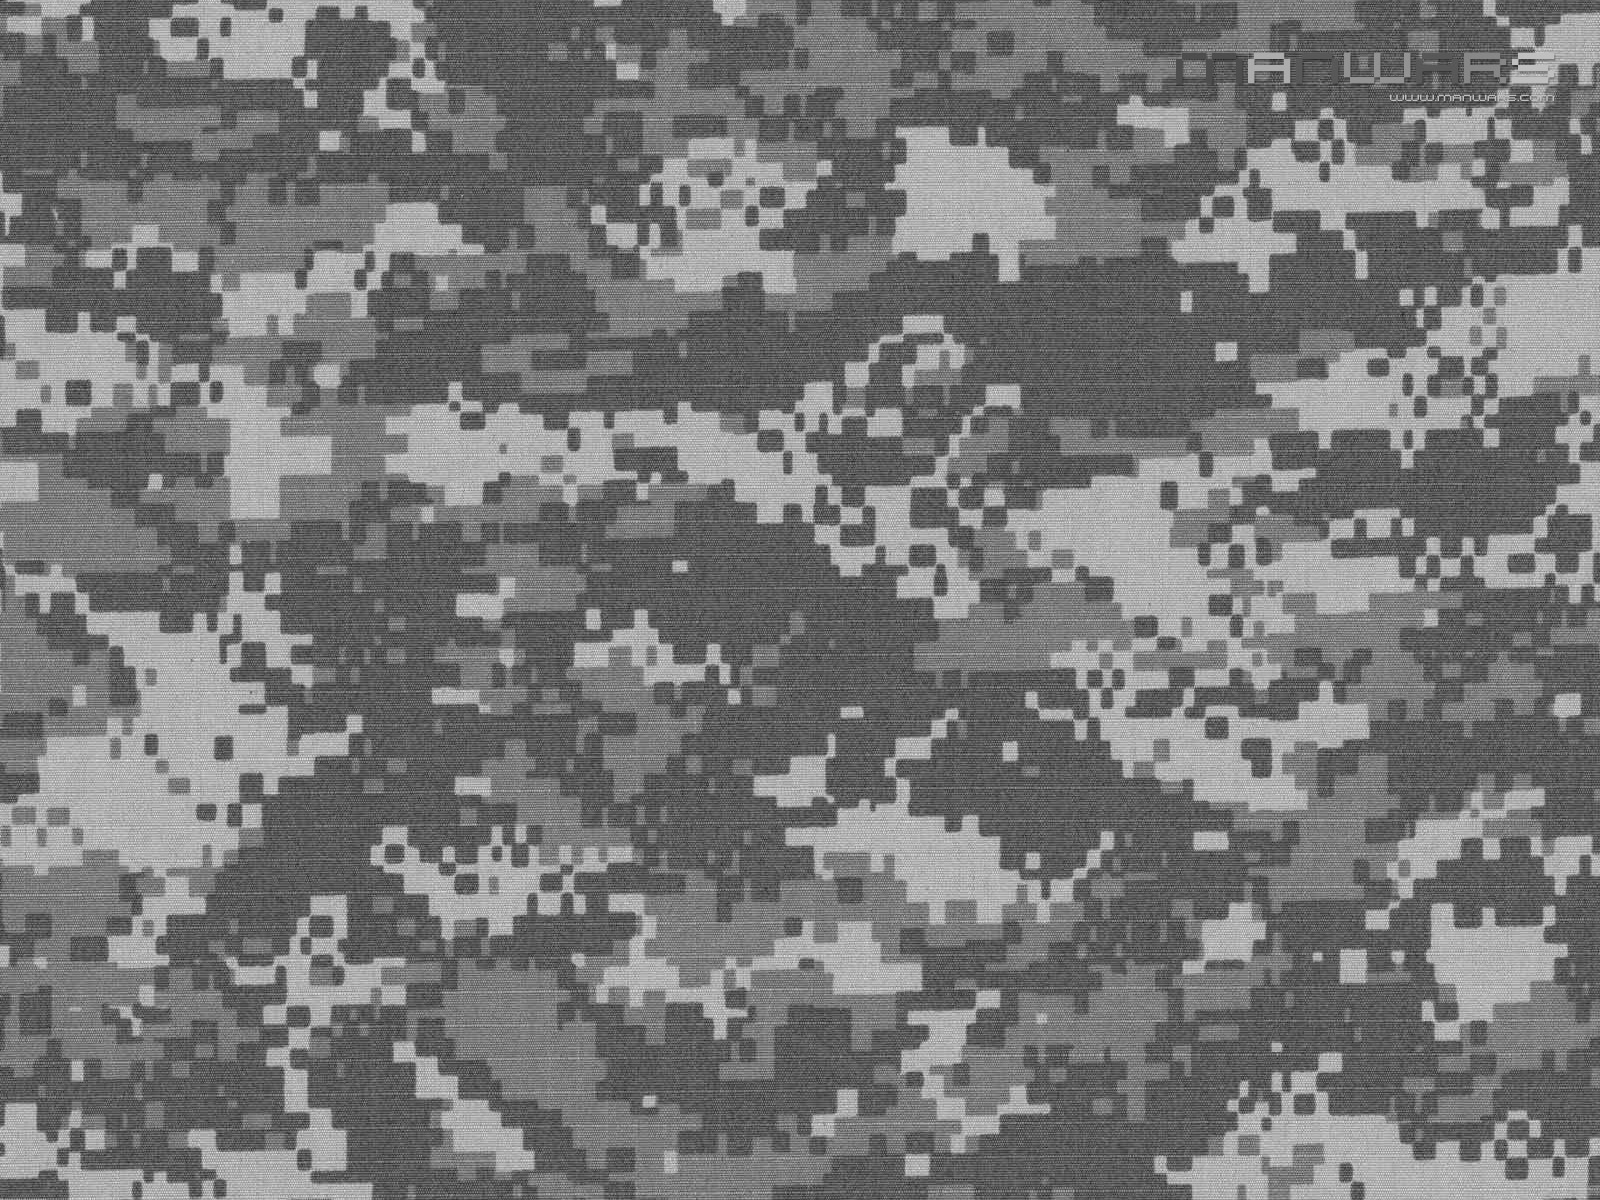 Camouflage Wallpaper 1600x1200 Camouflage 1600x1200